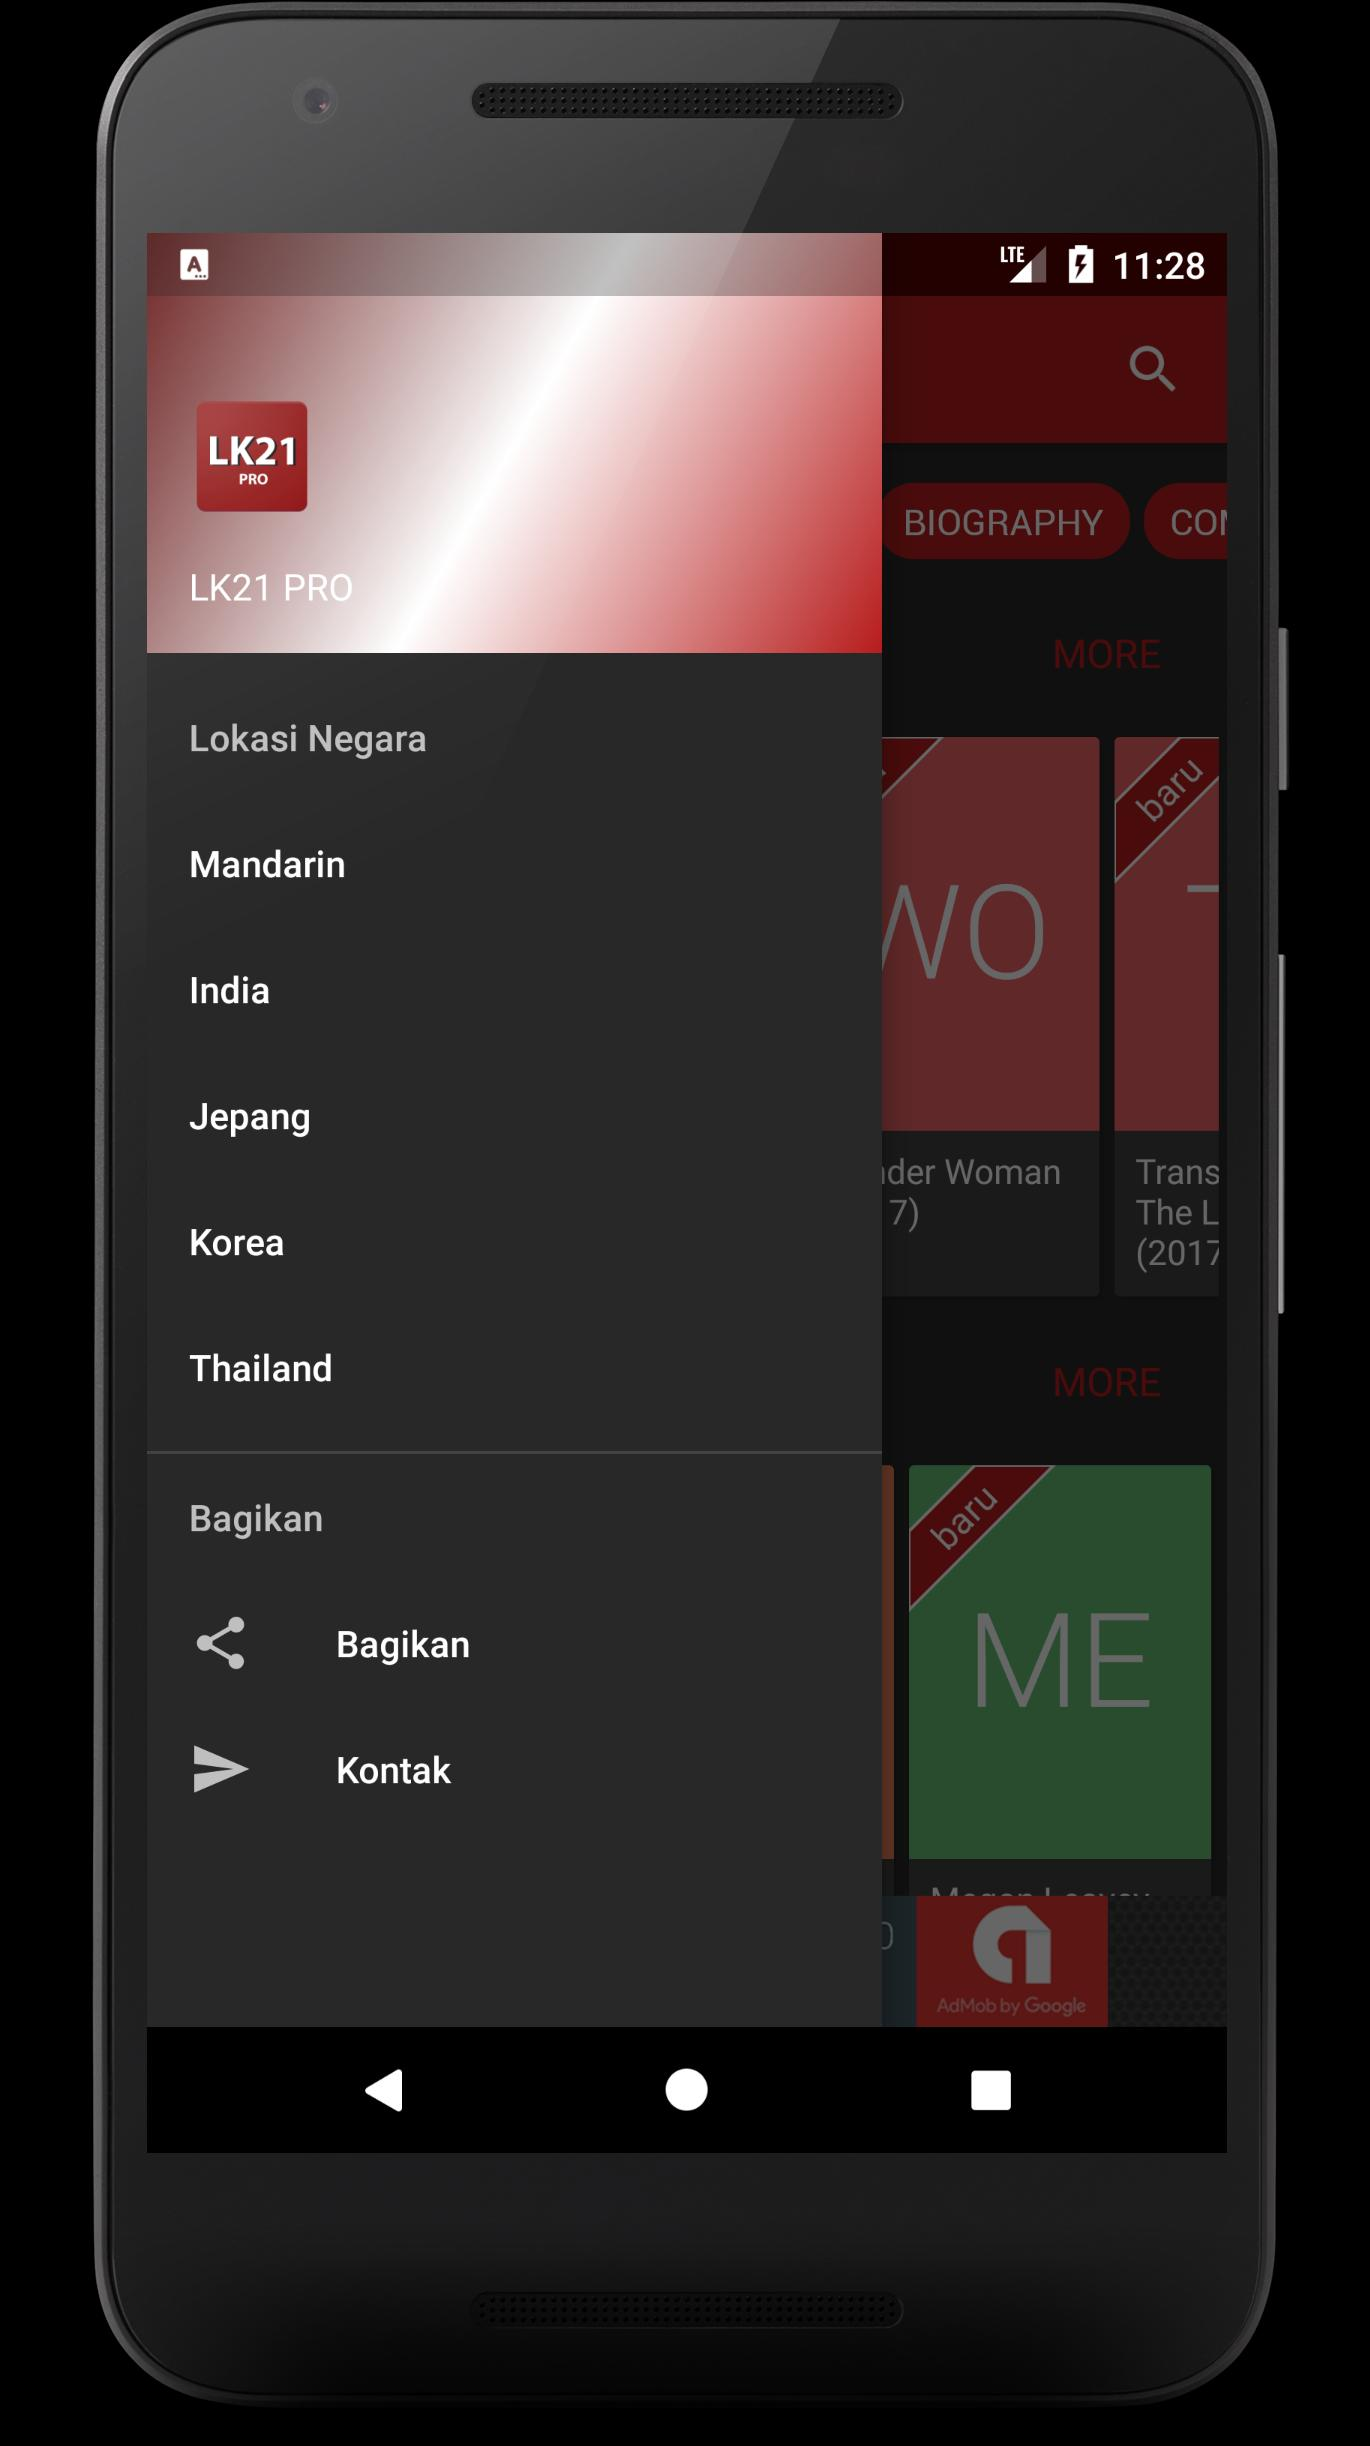 Nonton Lk21 Pro Hd For Android Apk Download